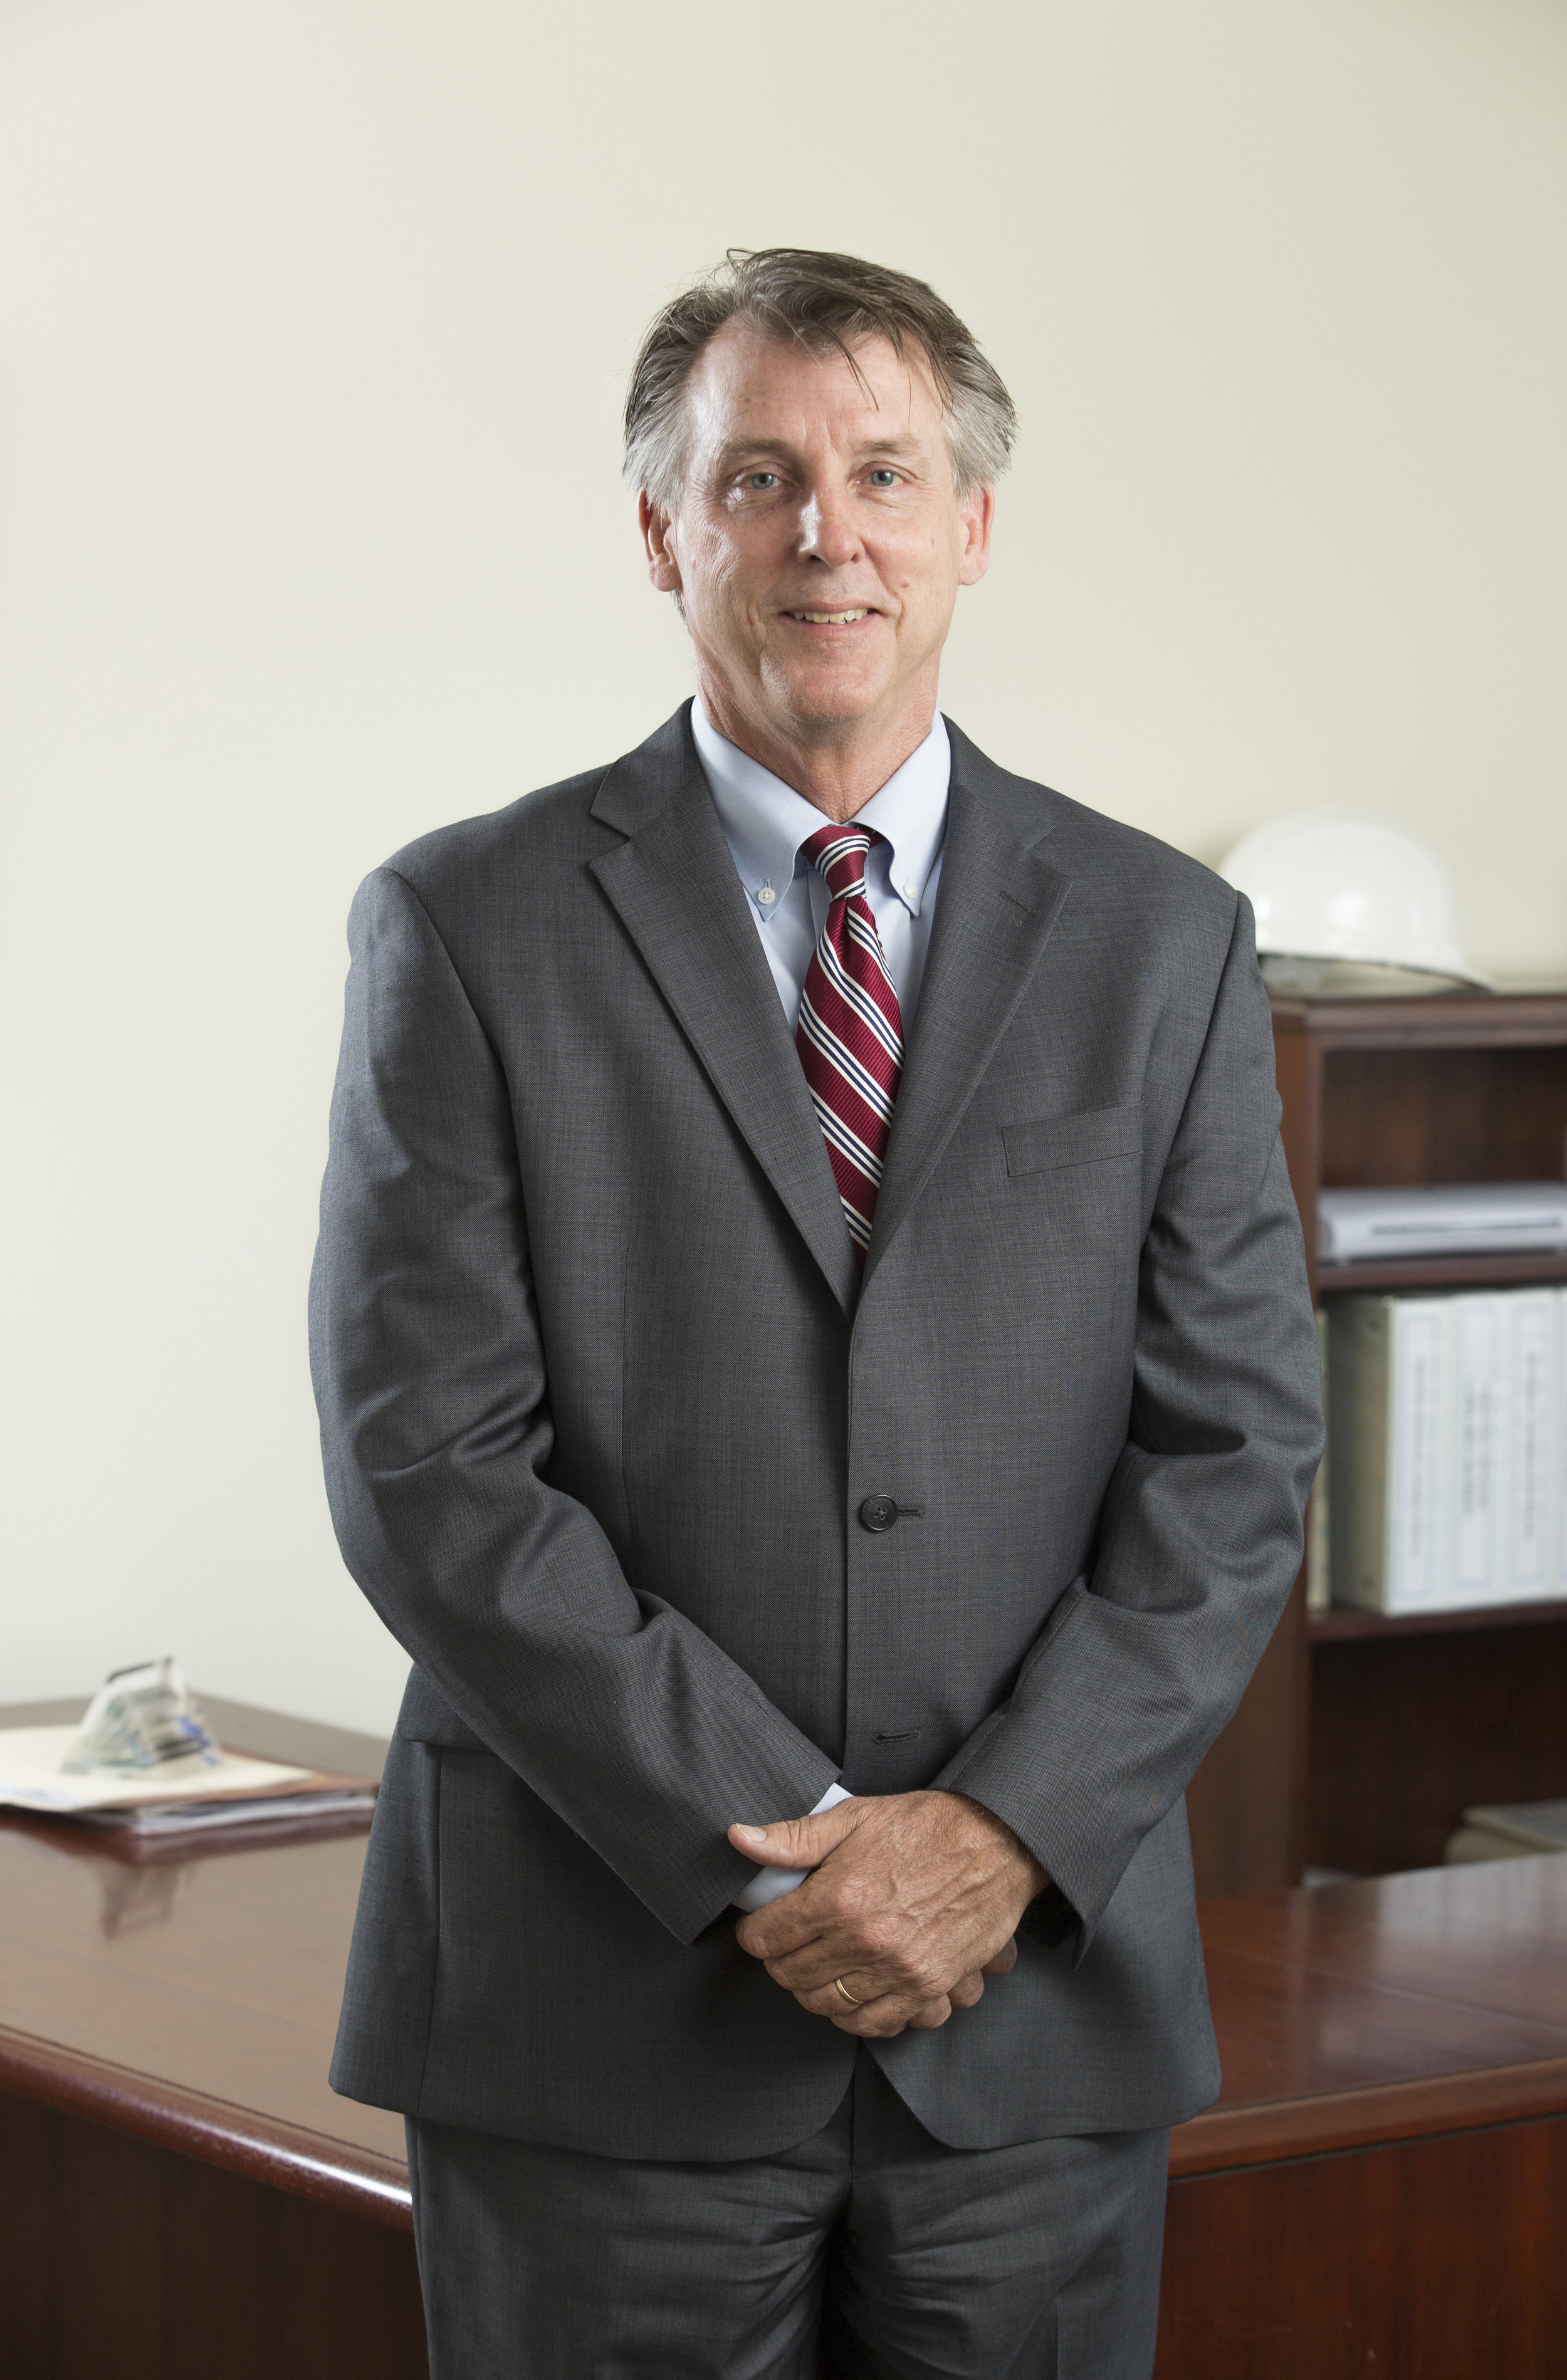 CHRIS RAMM - Vice President, General Manager